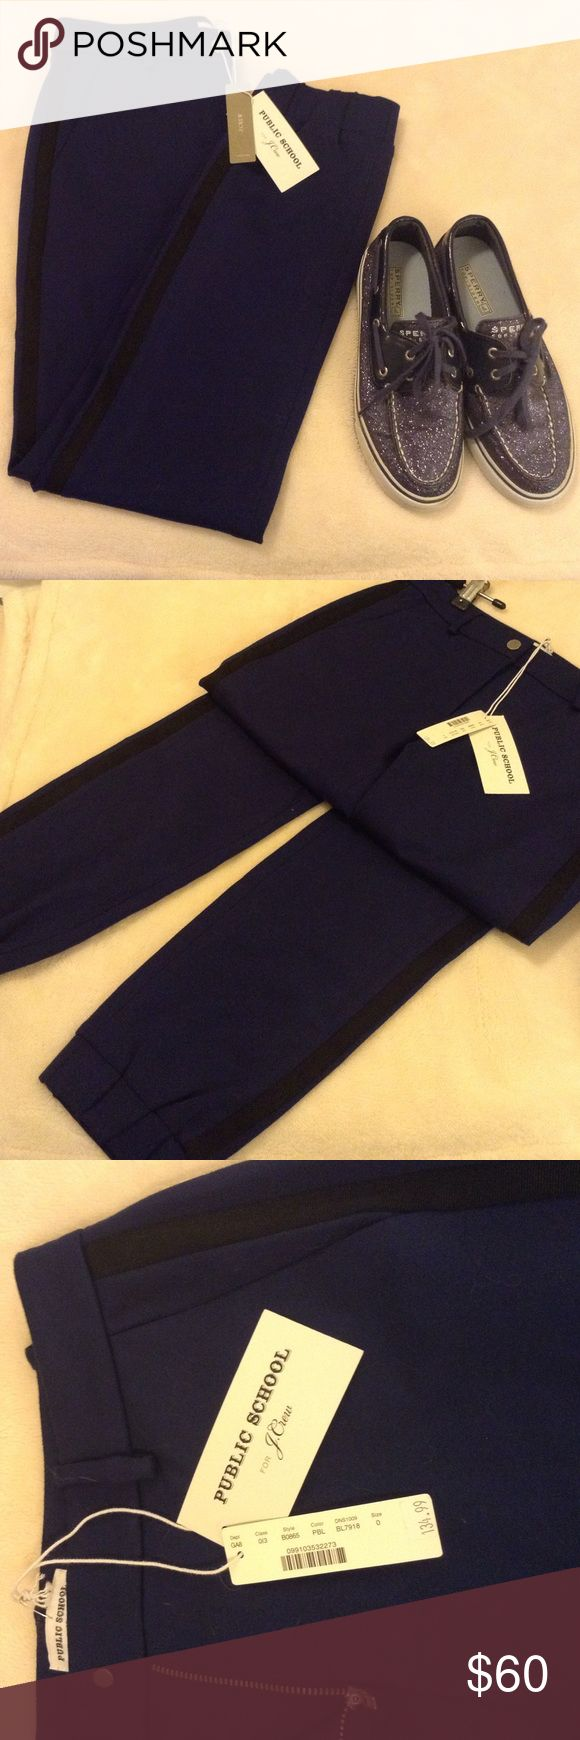 'Public School' for J.Crew Scarlet sweatpant 68% viscose 27% nylon 5% spandex luxury sweatpants joggers, these can be dressed up or down, navy with black stripe. Belt loops, zipper and snap closure. Super comfy chic! J. Crew Pants Track Pants & Joggers